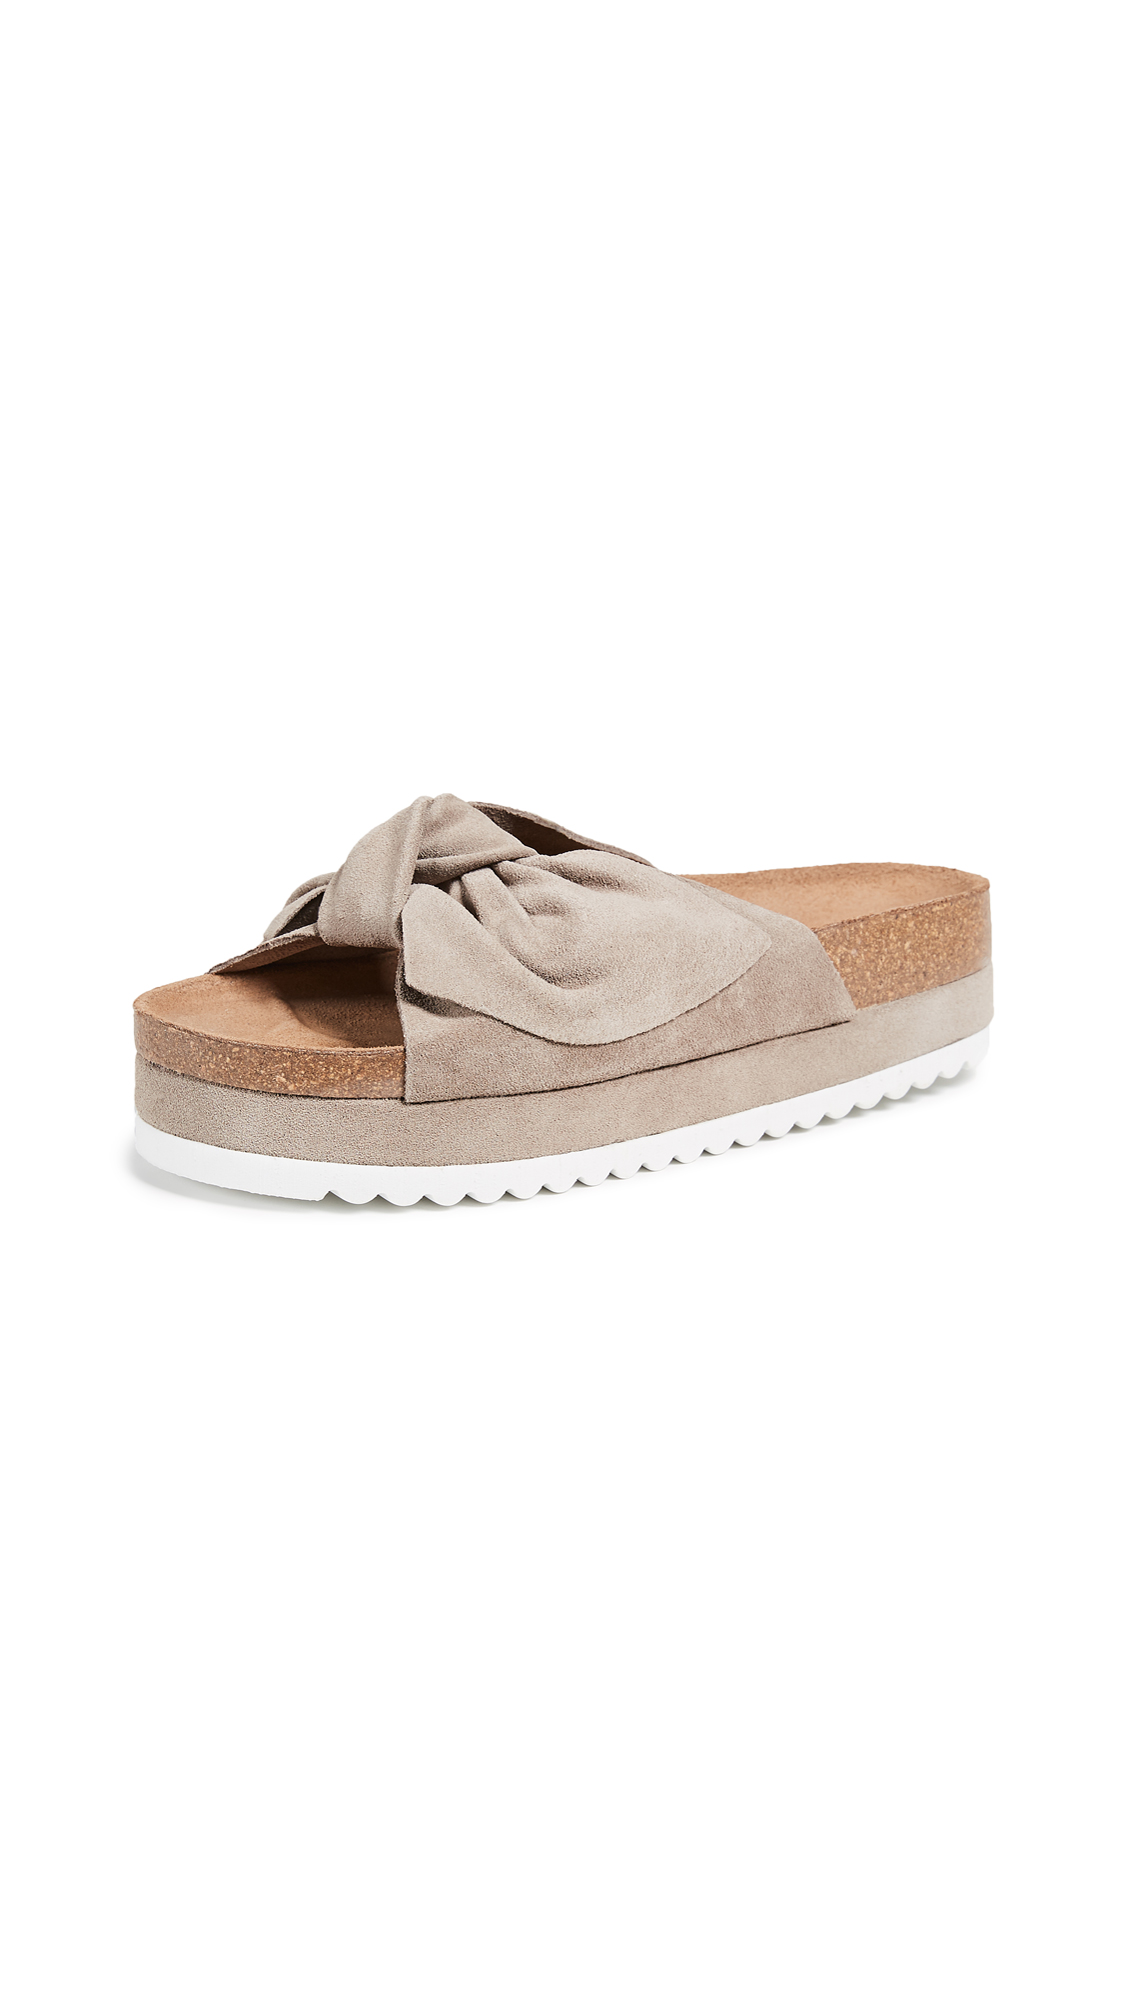 Jeffrey Campbell Rotuma Bow Slides - Taupe